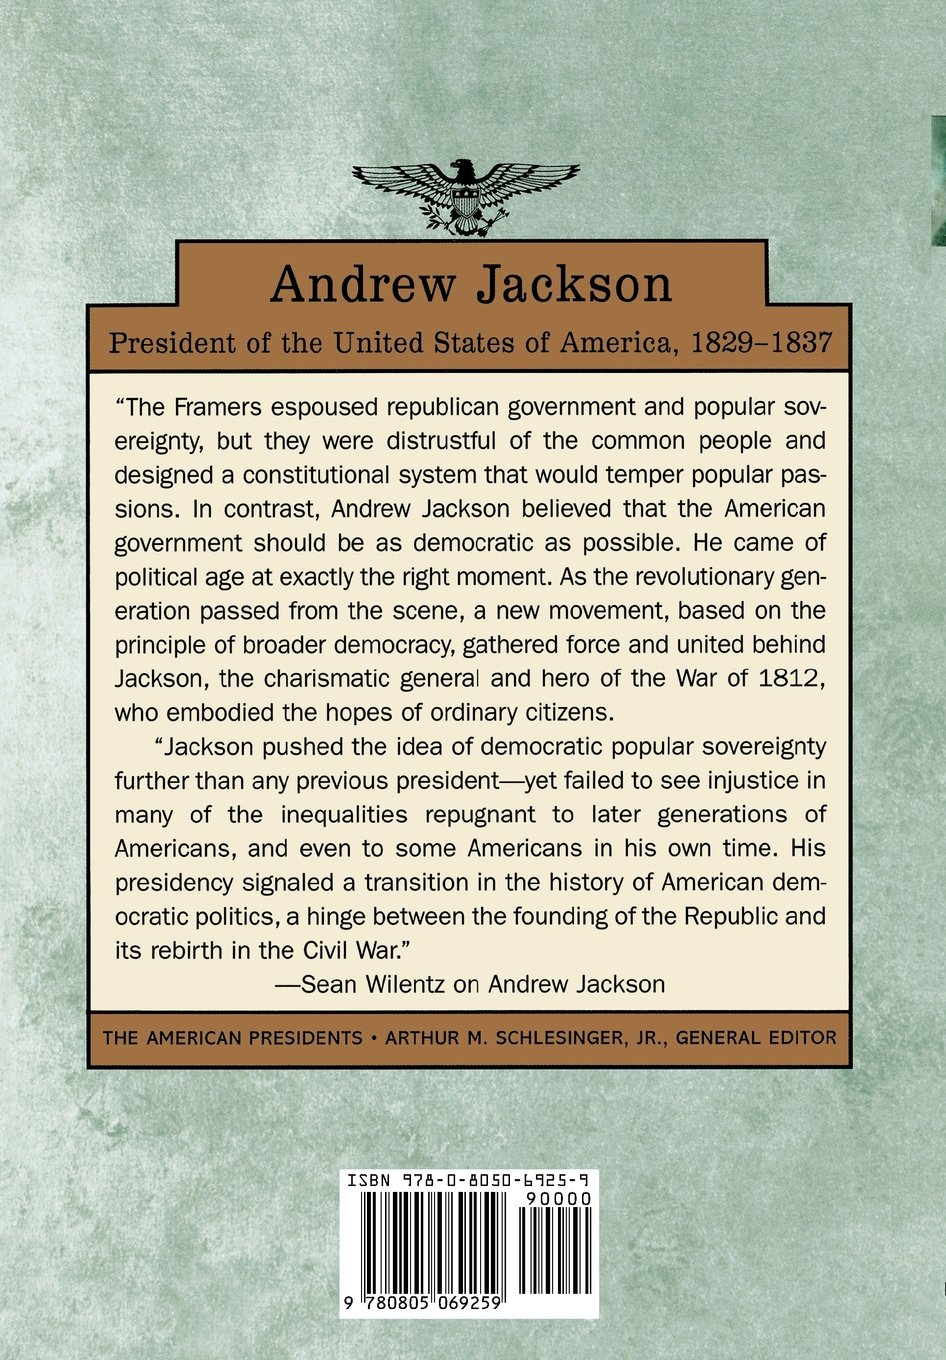 andrew jackson news article essay New legislation joins the ongoing effort to replace andrew jackson on american currency the earliest papers were in some ways more readable send a news tip.